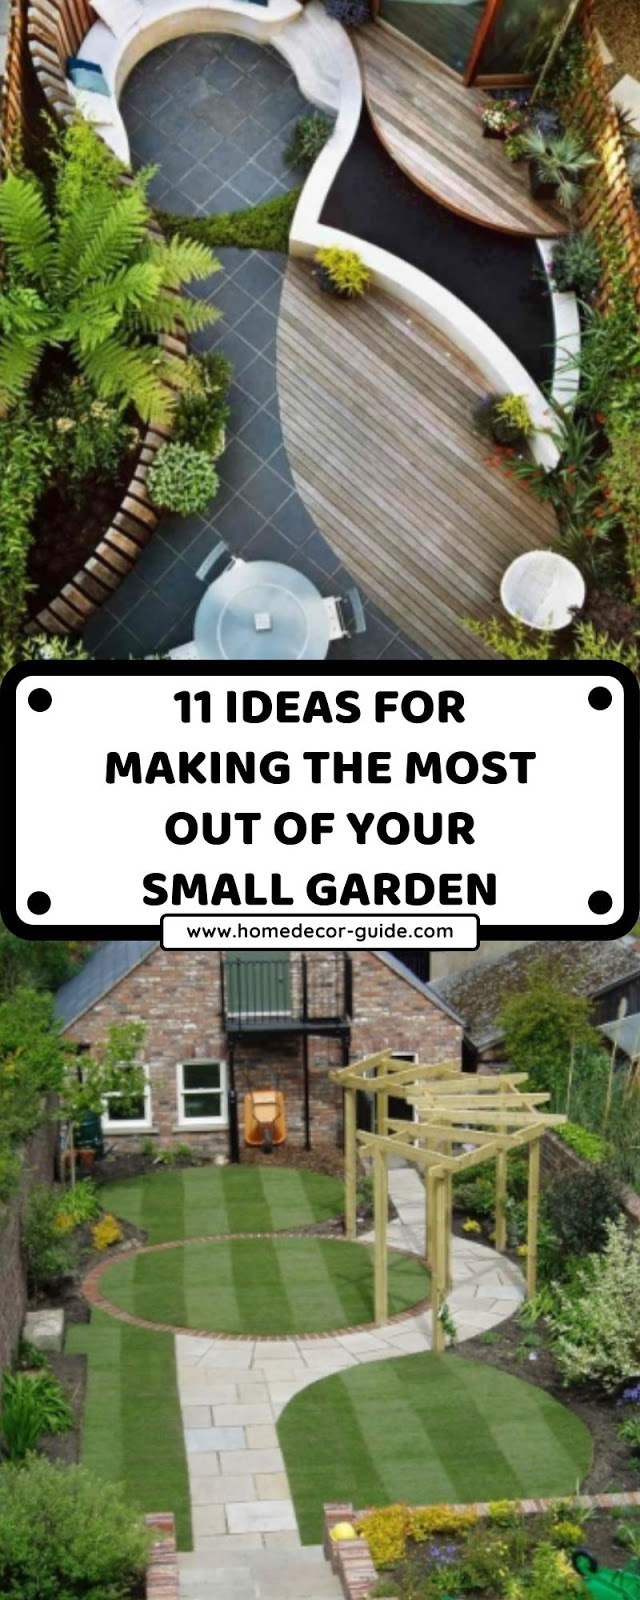 11 IDEAS FOR MAKING THE MOST OUT OF YOUR SMALL GARDEN